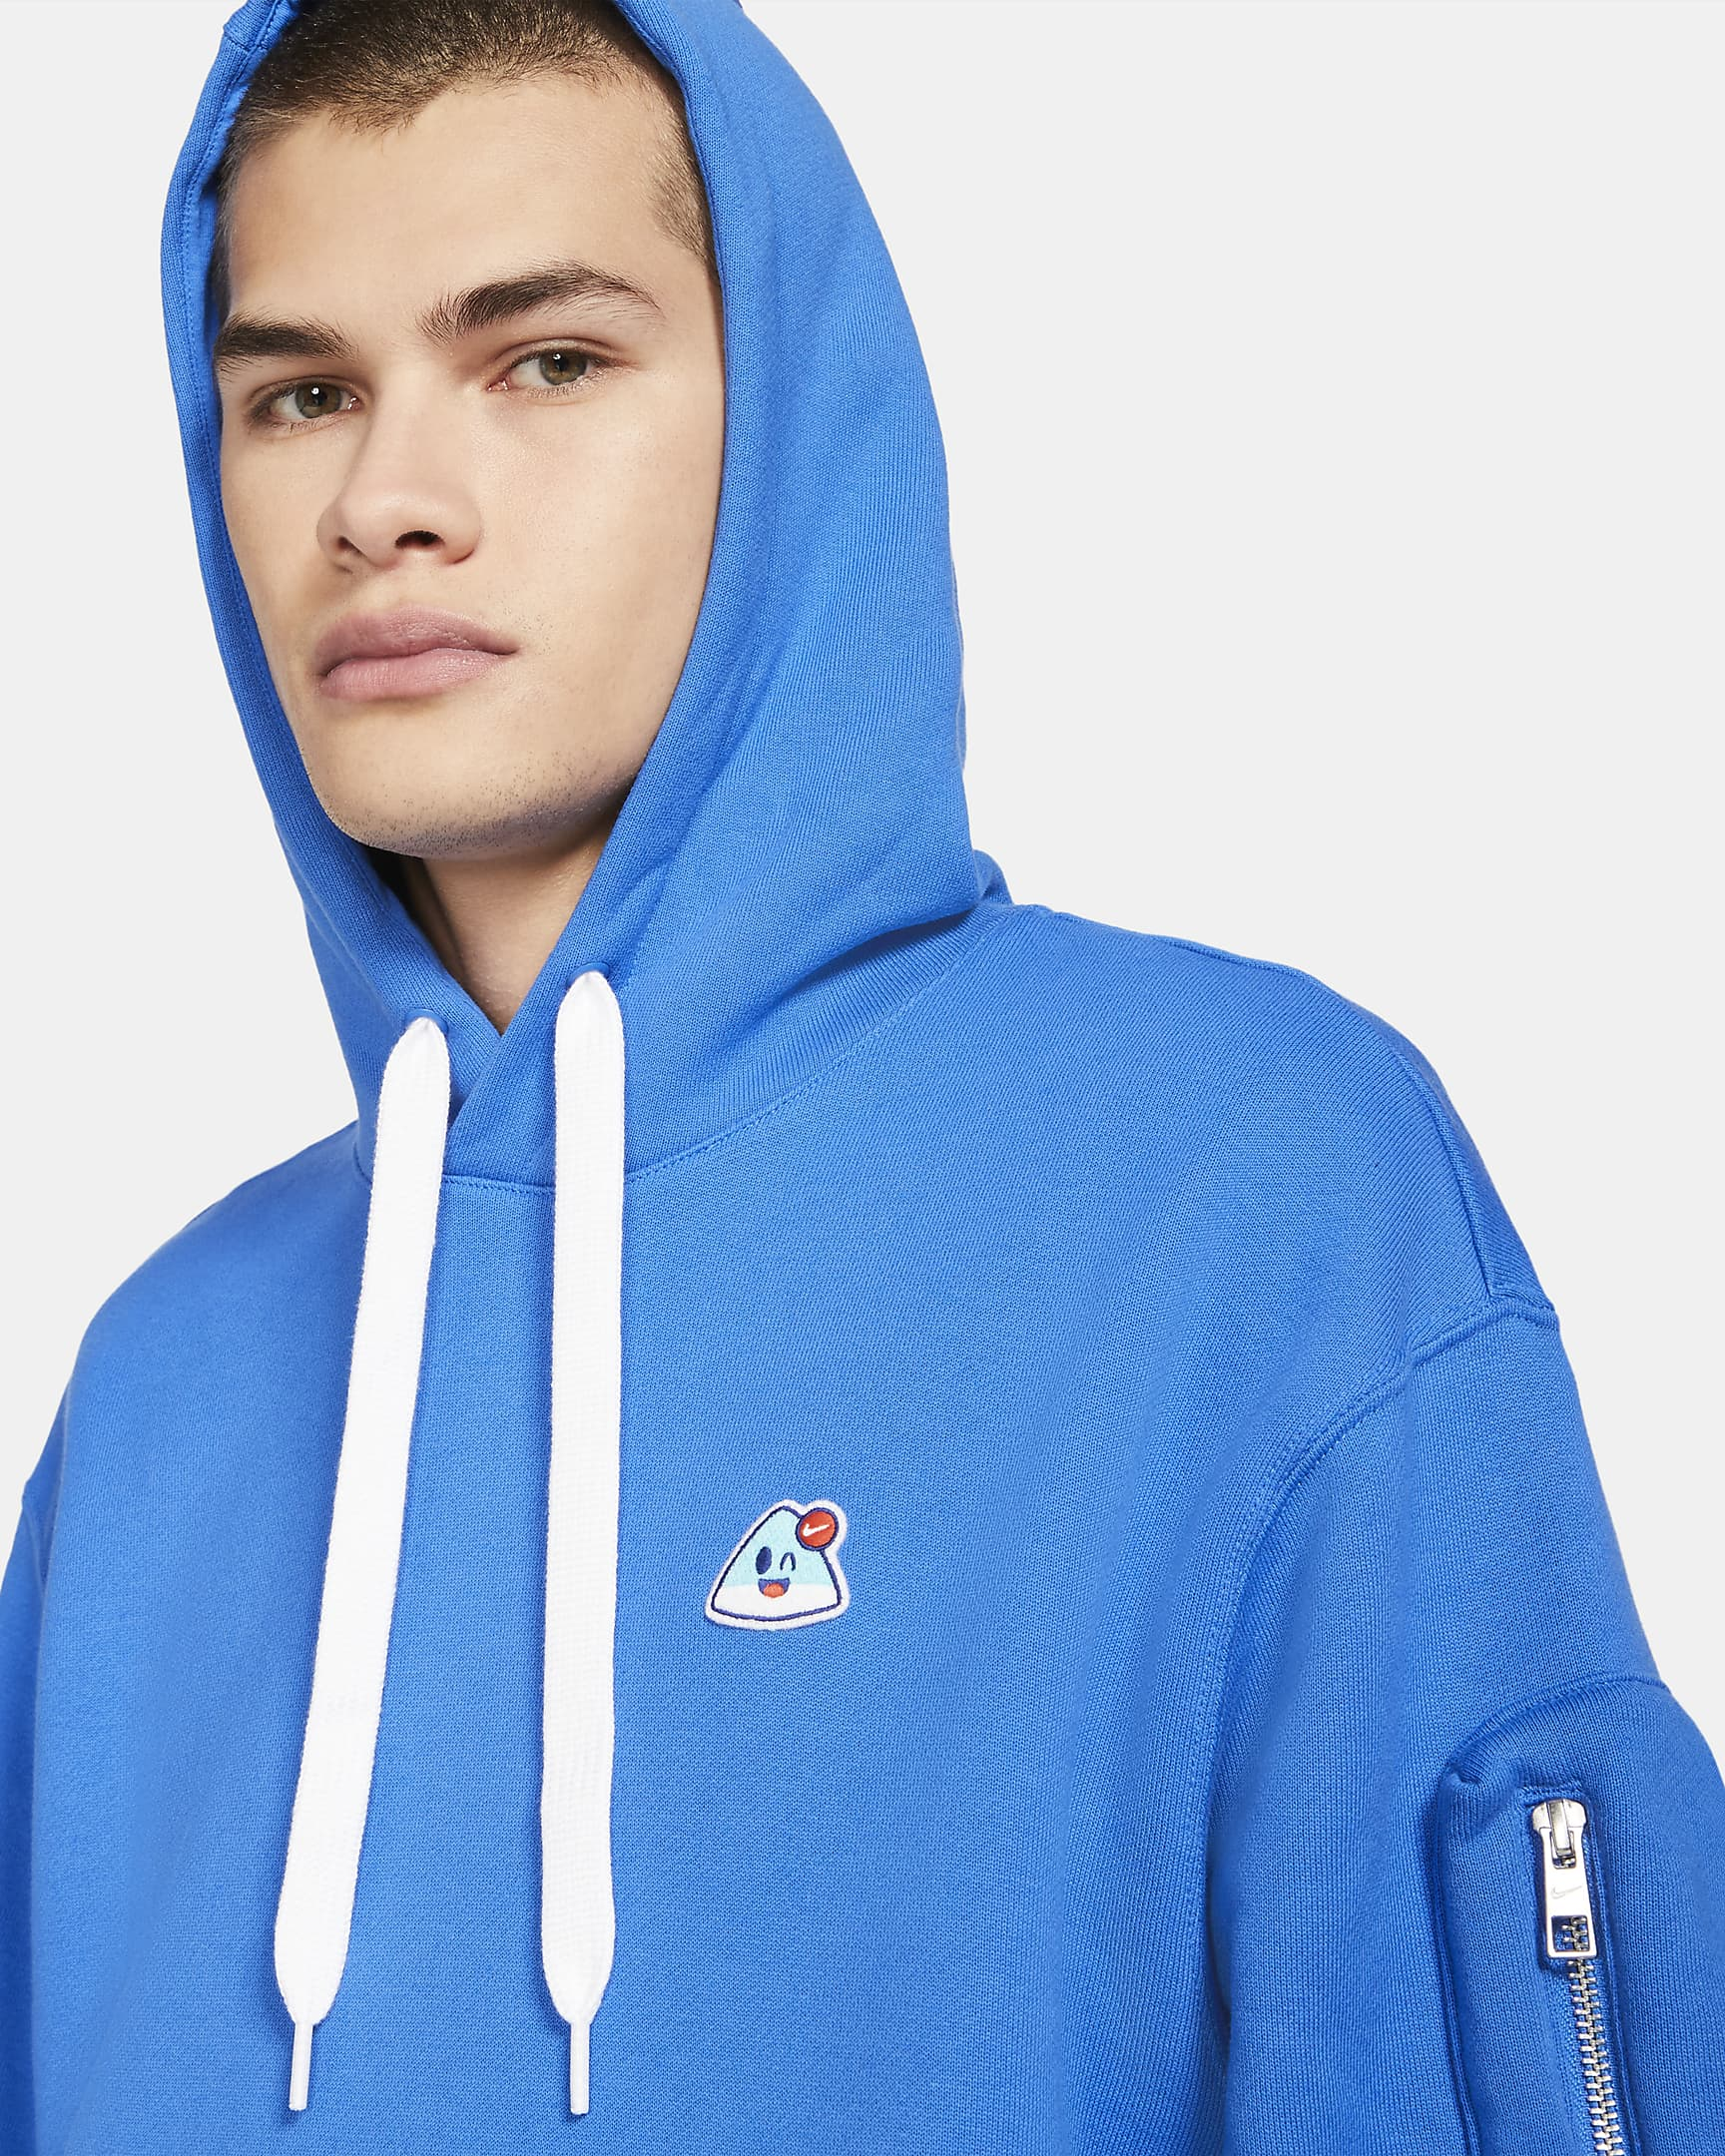 sportswear-mens-french-terry-pullover-hoodie-SL47Jk-5